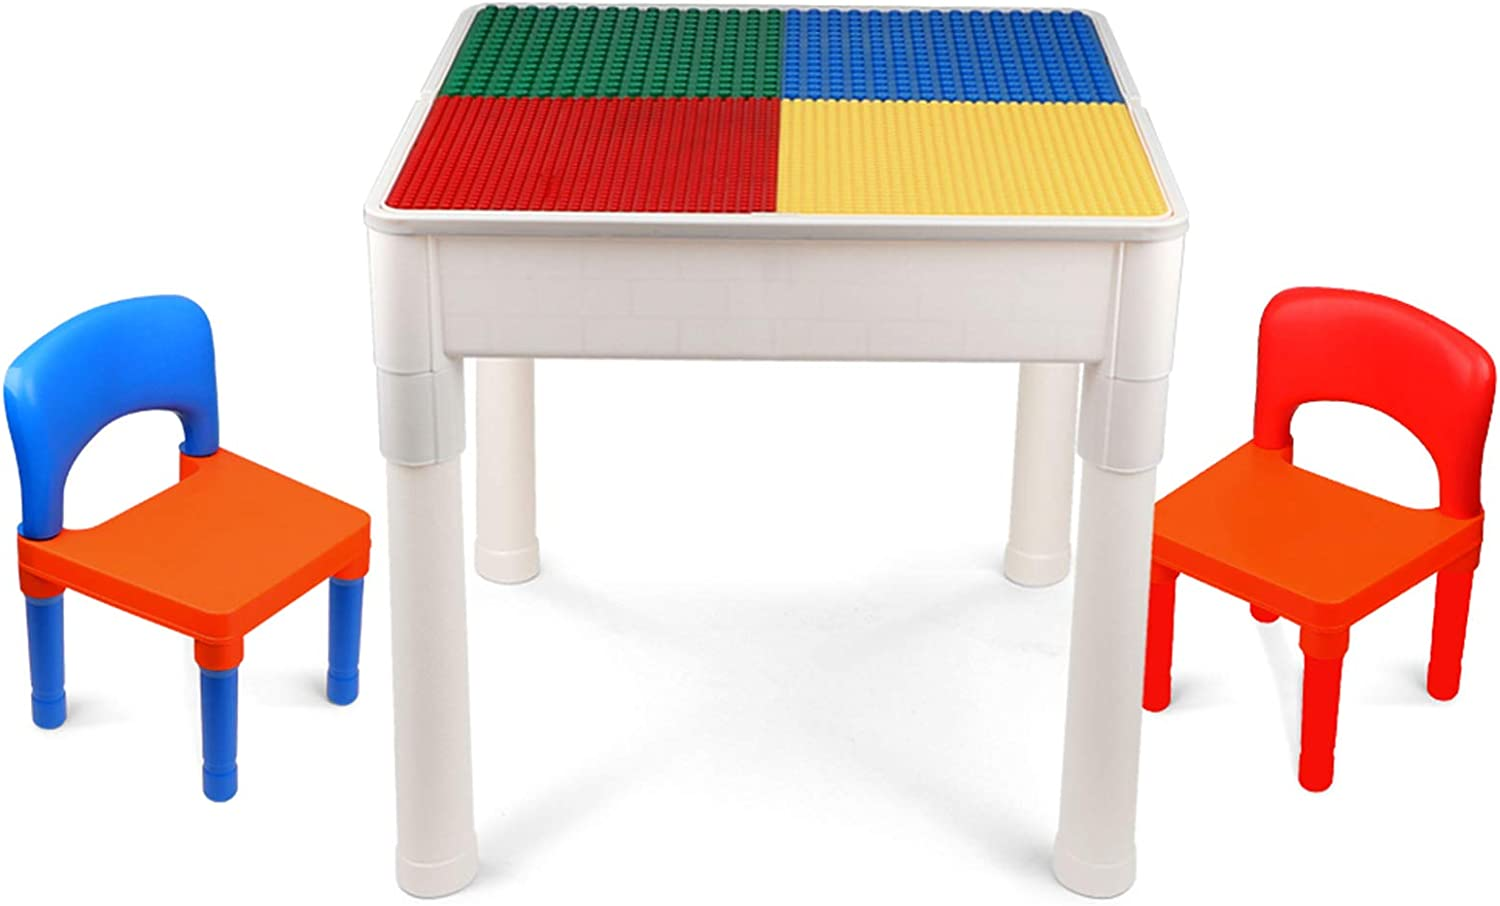 Lbla Kids Activity Table Set 4 In 1 Building Block Table Water Table Craft Table With 2 Chairs For Toddles Furniture Decor